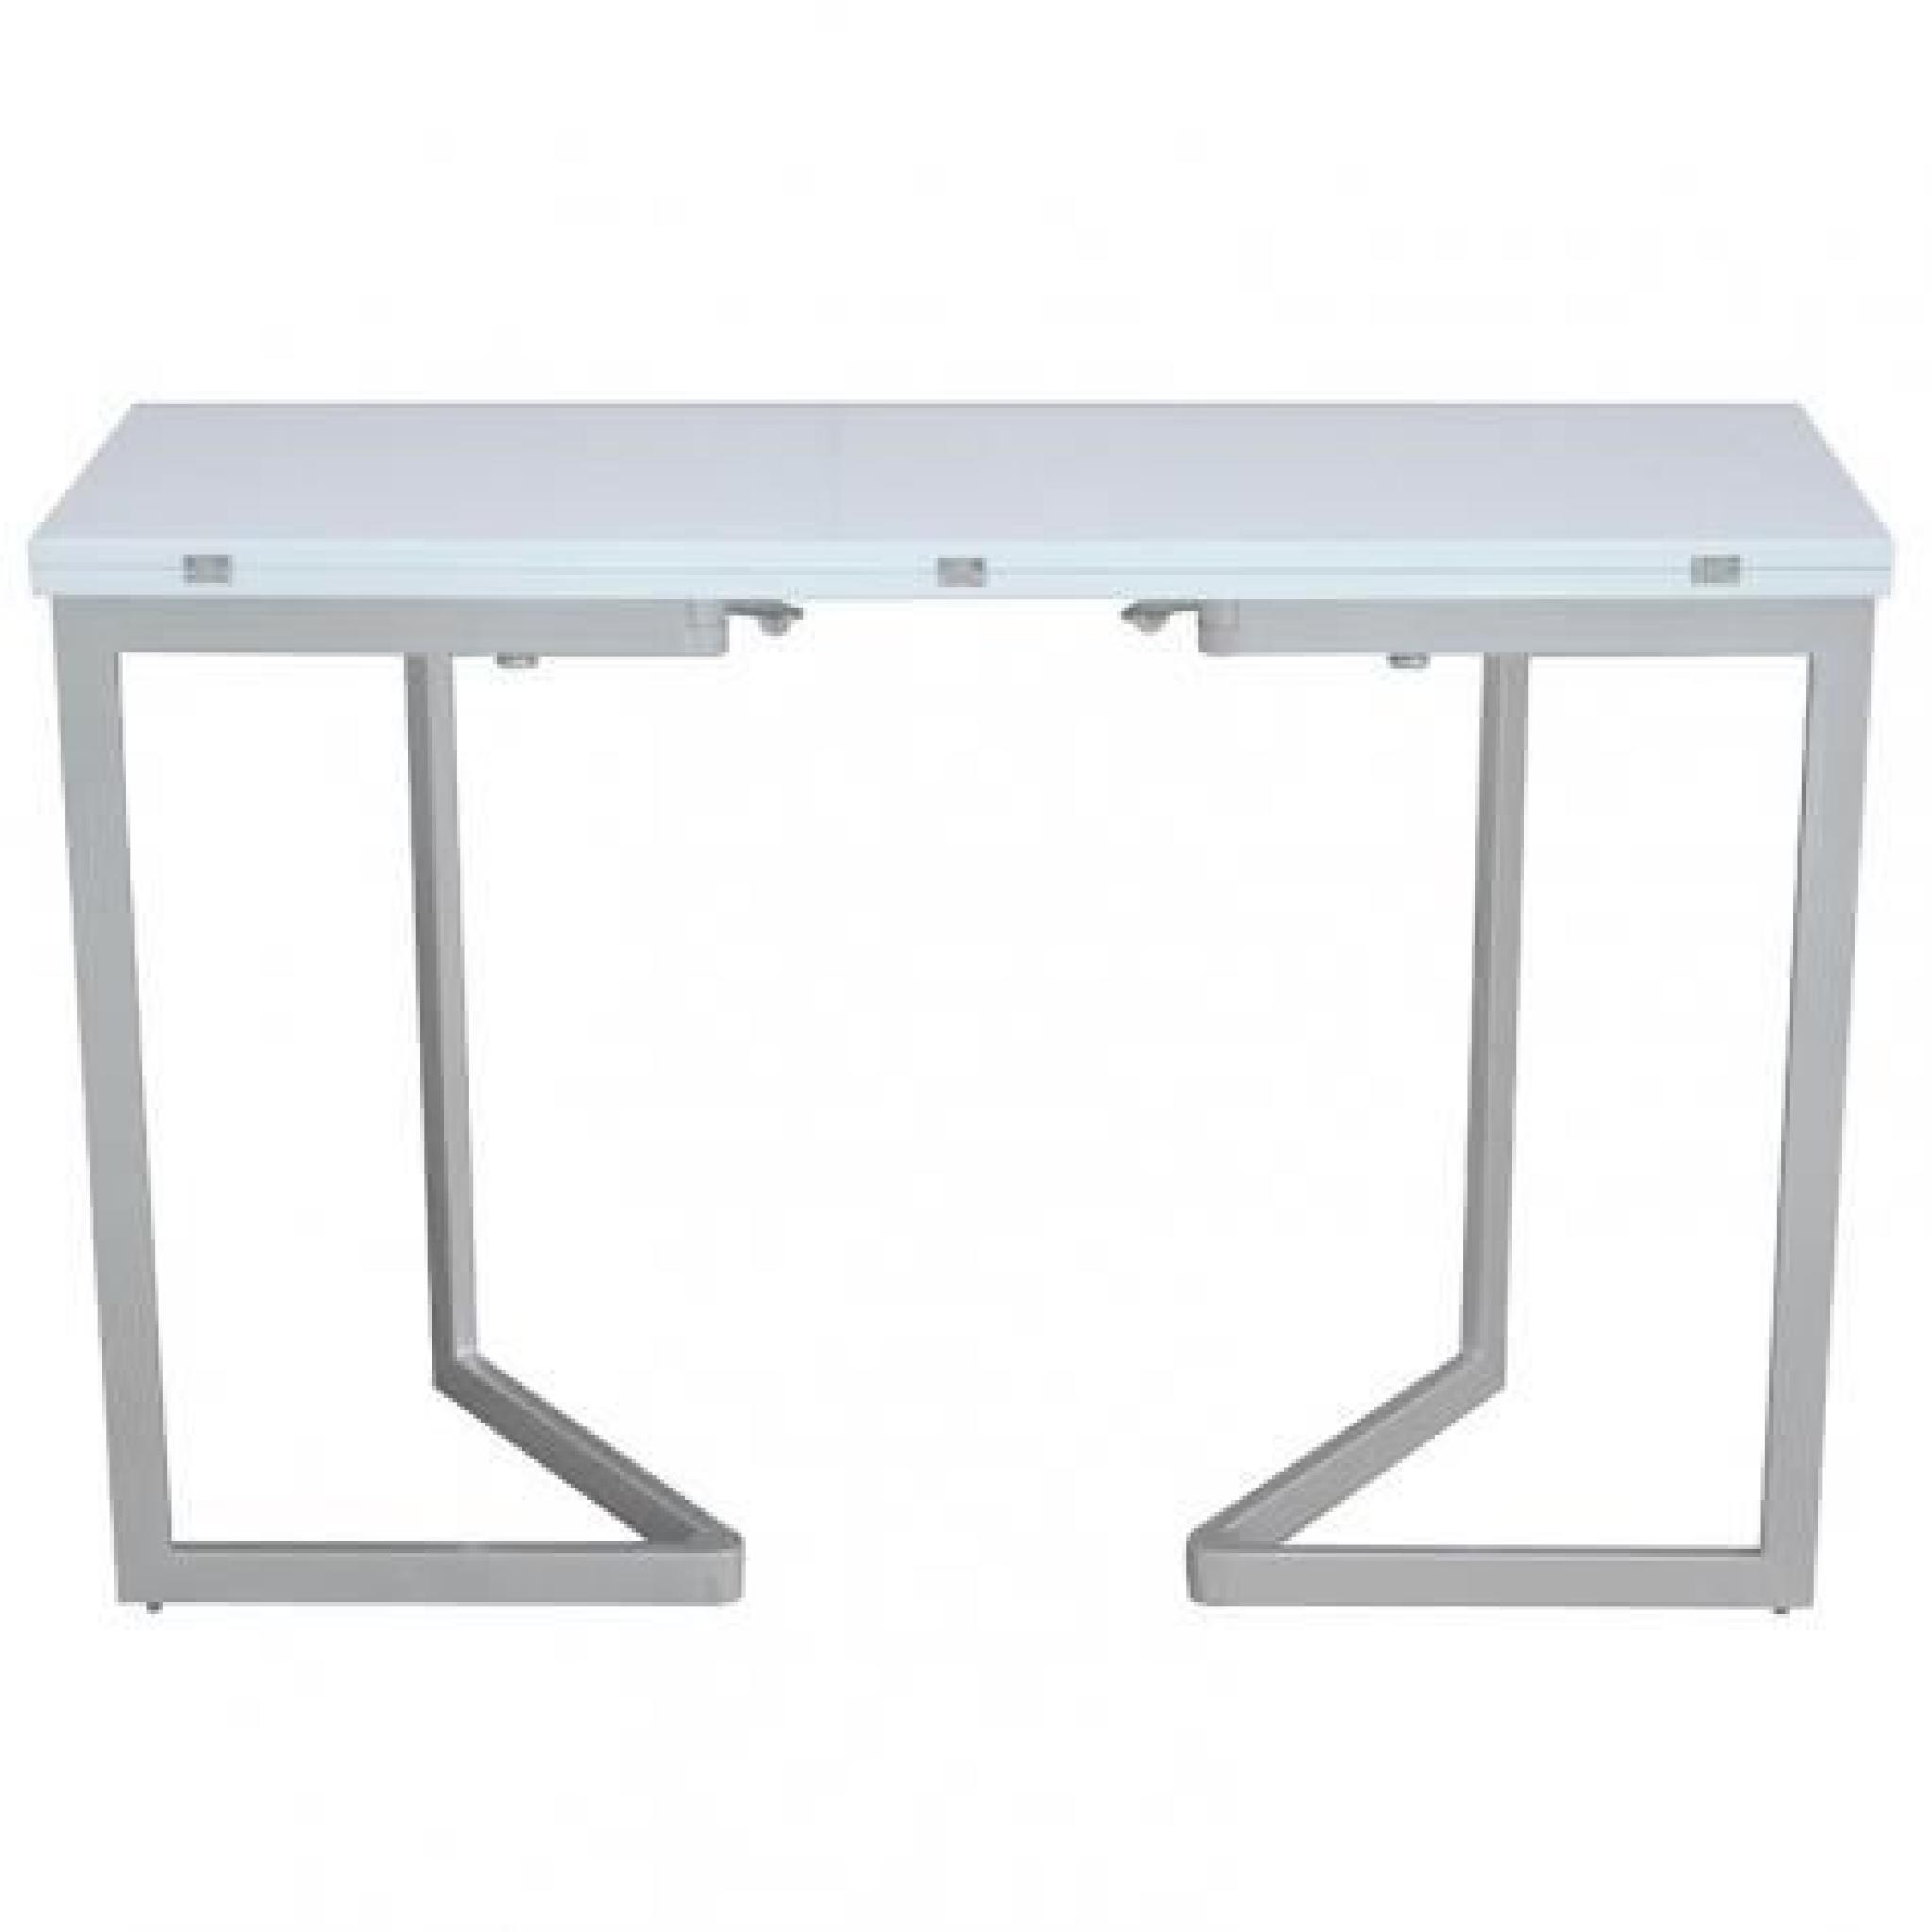 Table extensible blanche laquee maison design for Table blanche extensible